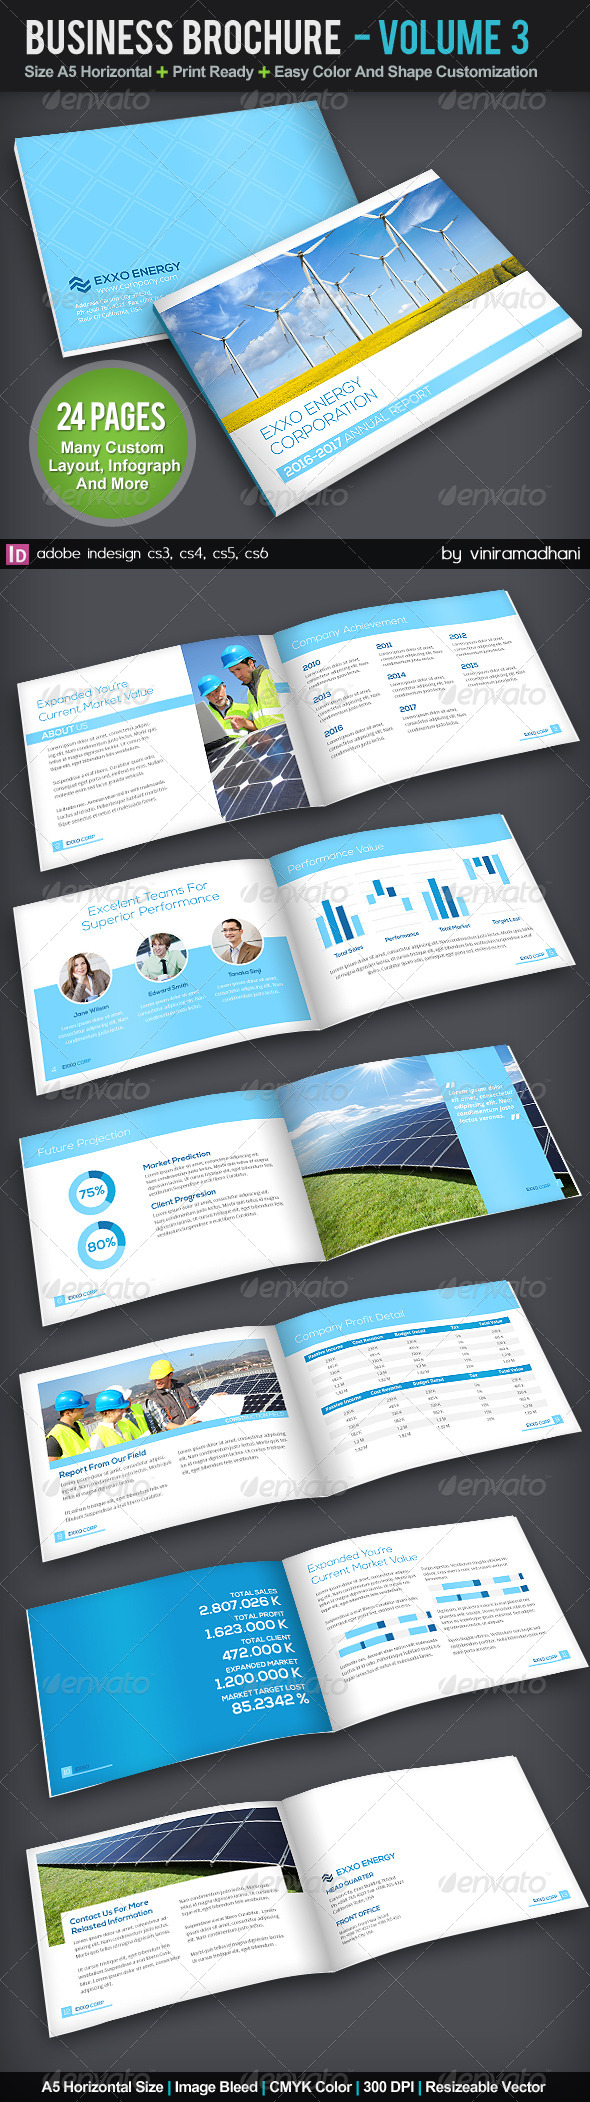 GraphicRiver Corporate Business Brochure Volume 3 5757998